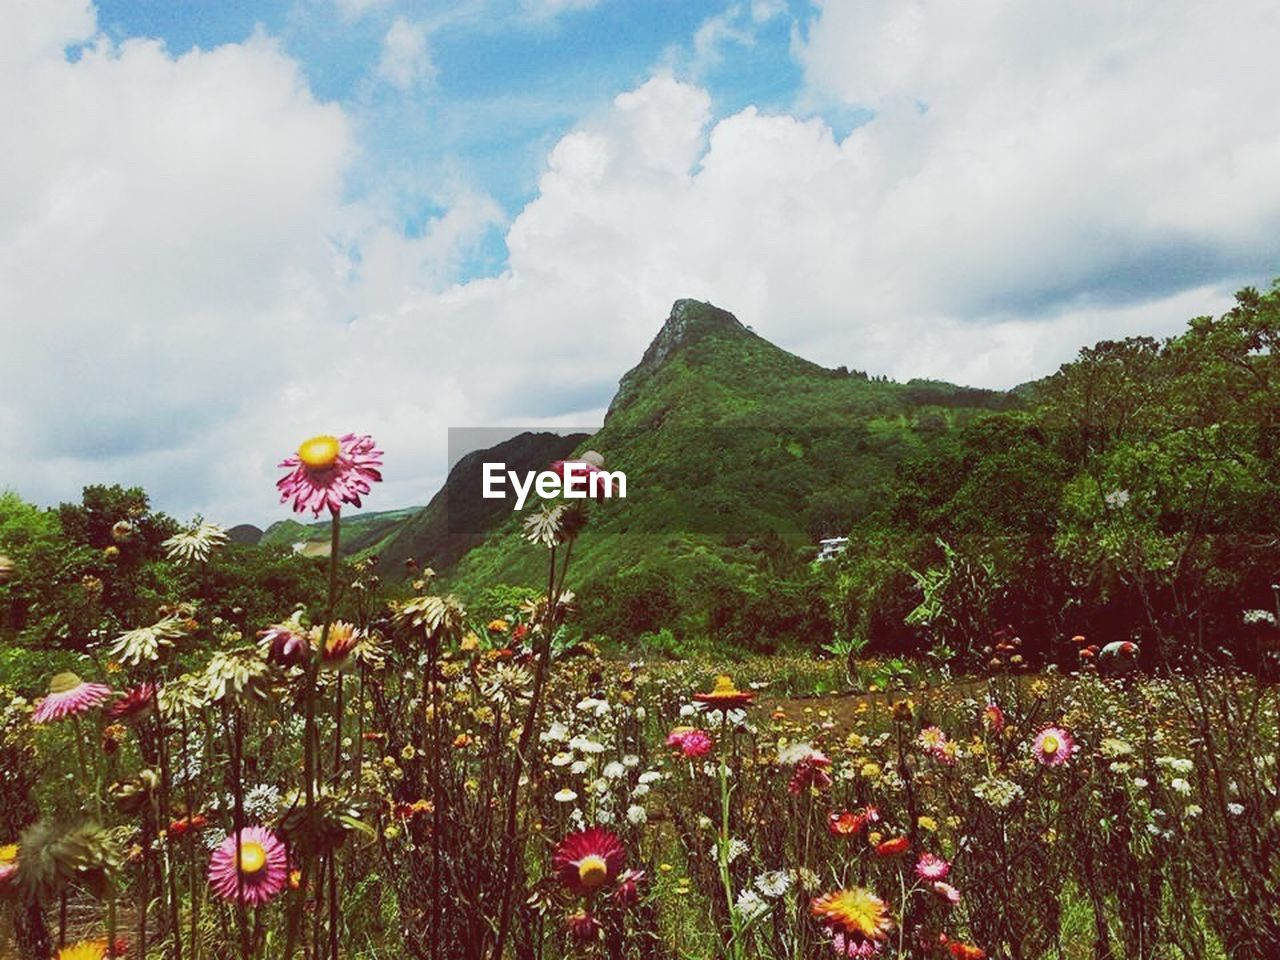 flower, nature, beauty in nature, cloud - sky, growth, sky, outdoors, day, tranquility, no people, tranquil scene, mountain, plant, scenics, green color, freshness, fragility, landscape, flower head